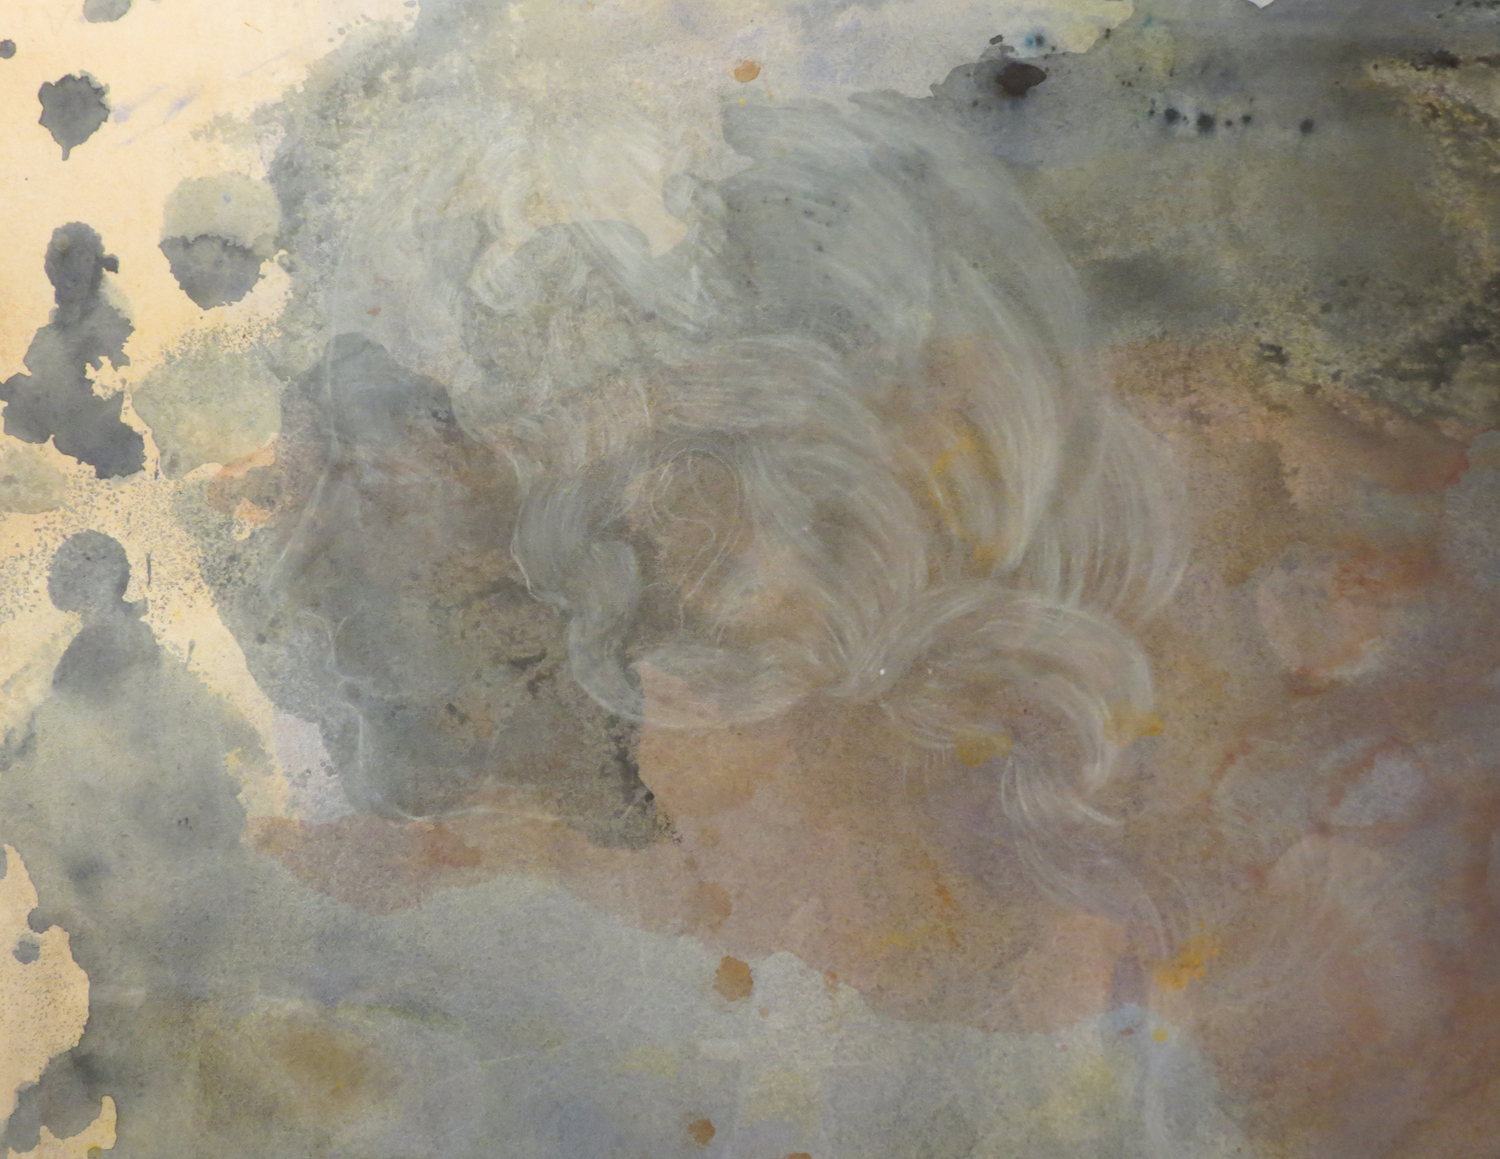 7 Andrea Wood,  Spring 2  (detail), ink, pencil, chalk, charcoal on cotton rag paper, $615